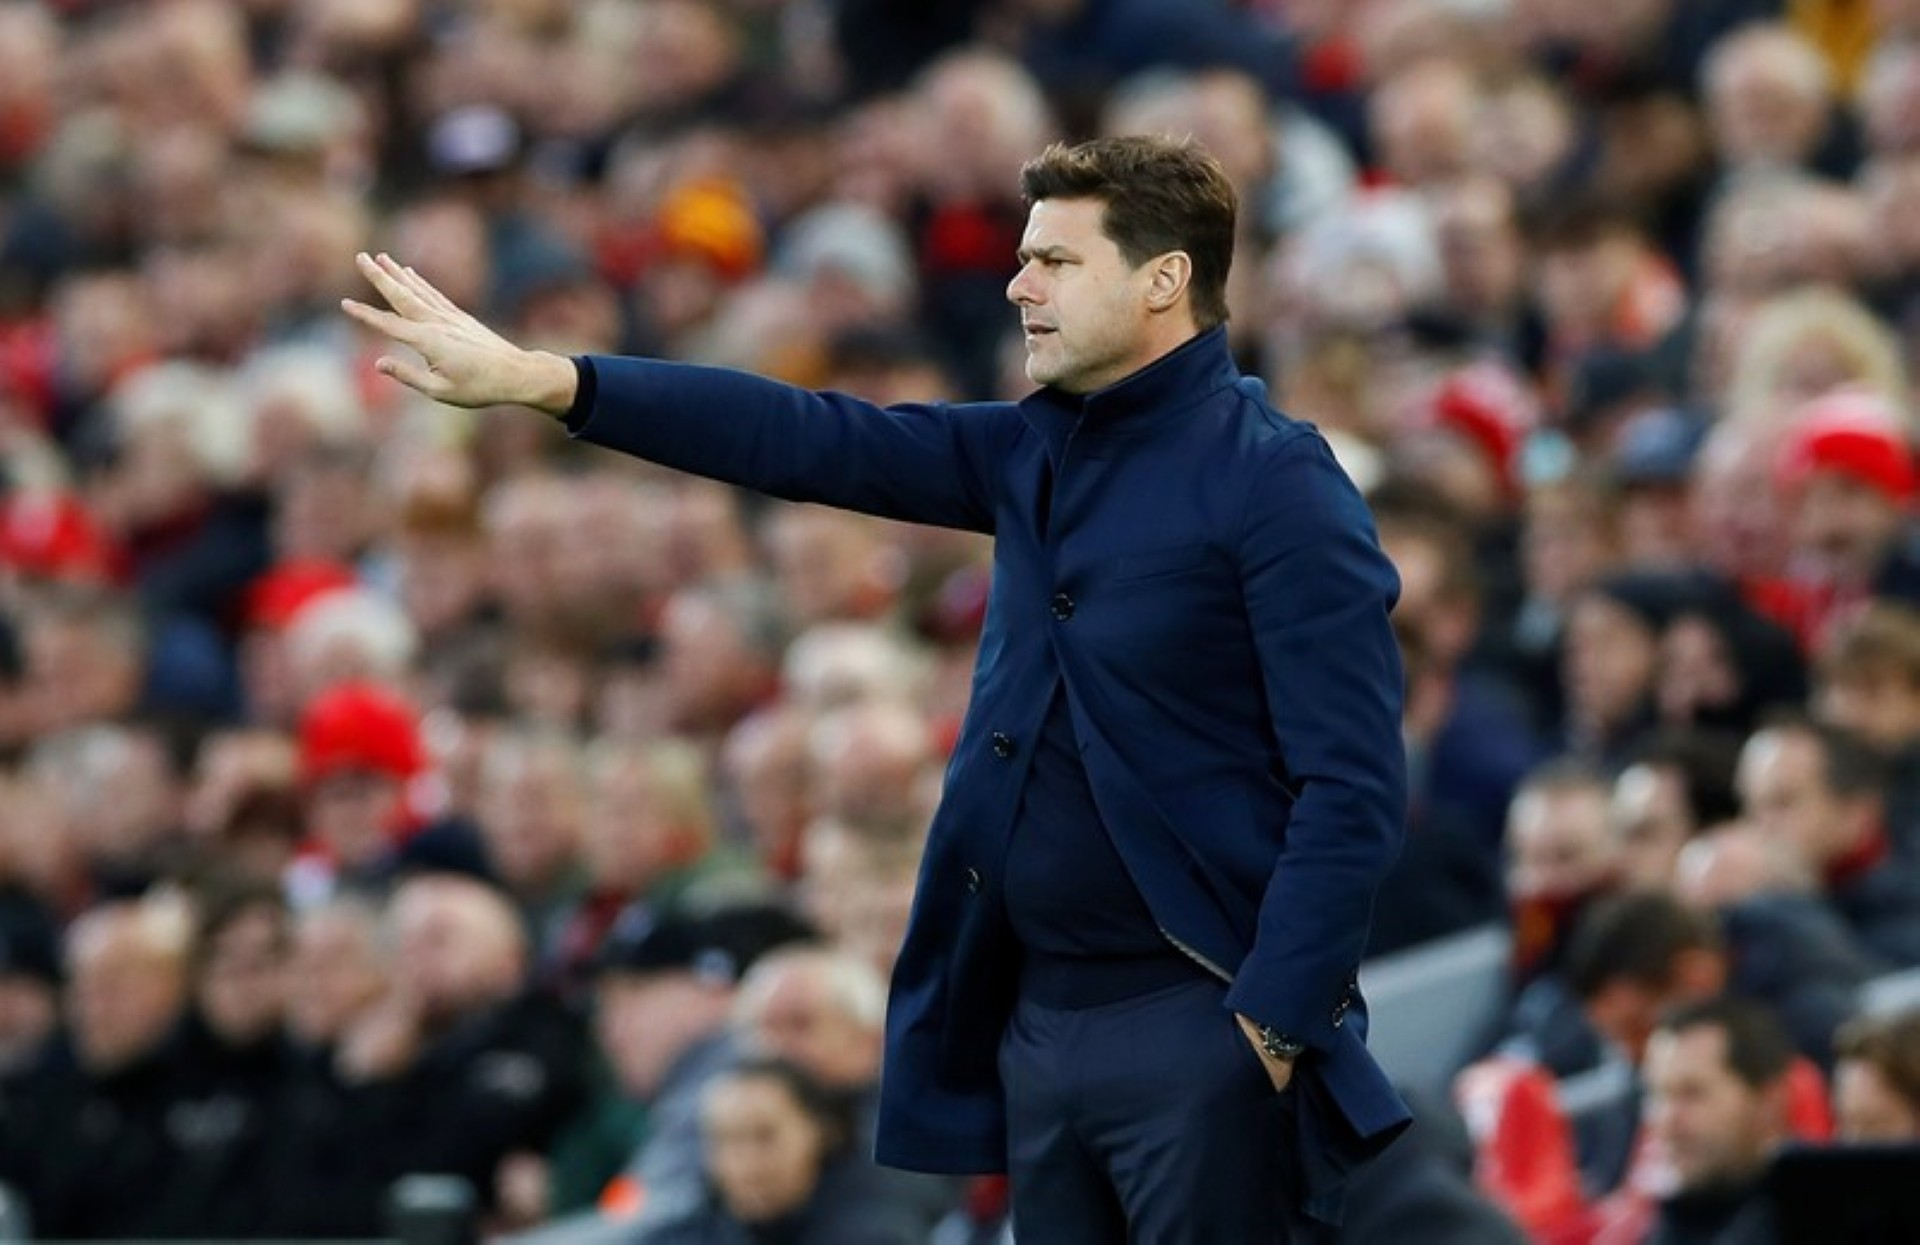 Football No Time To Cry Over Injuries Pochettino The Star